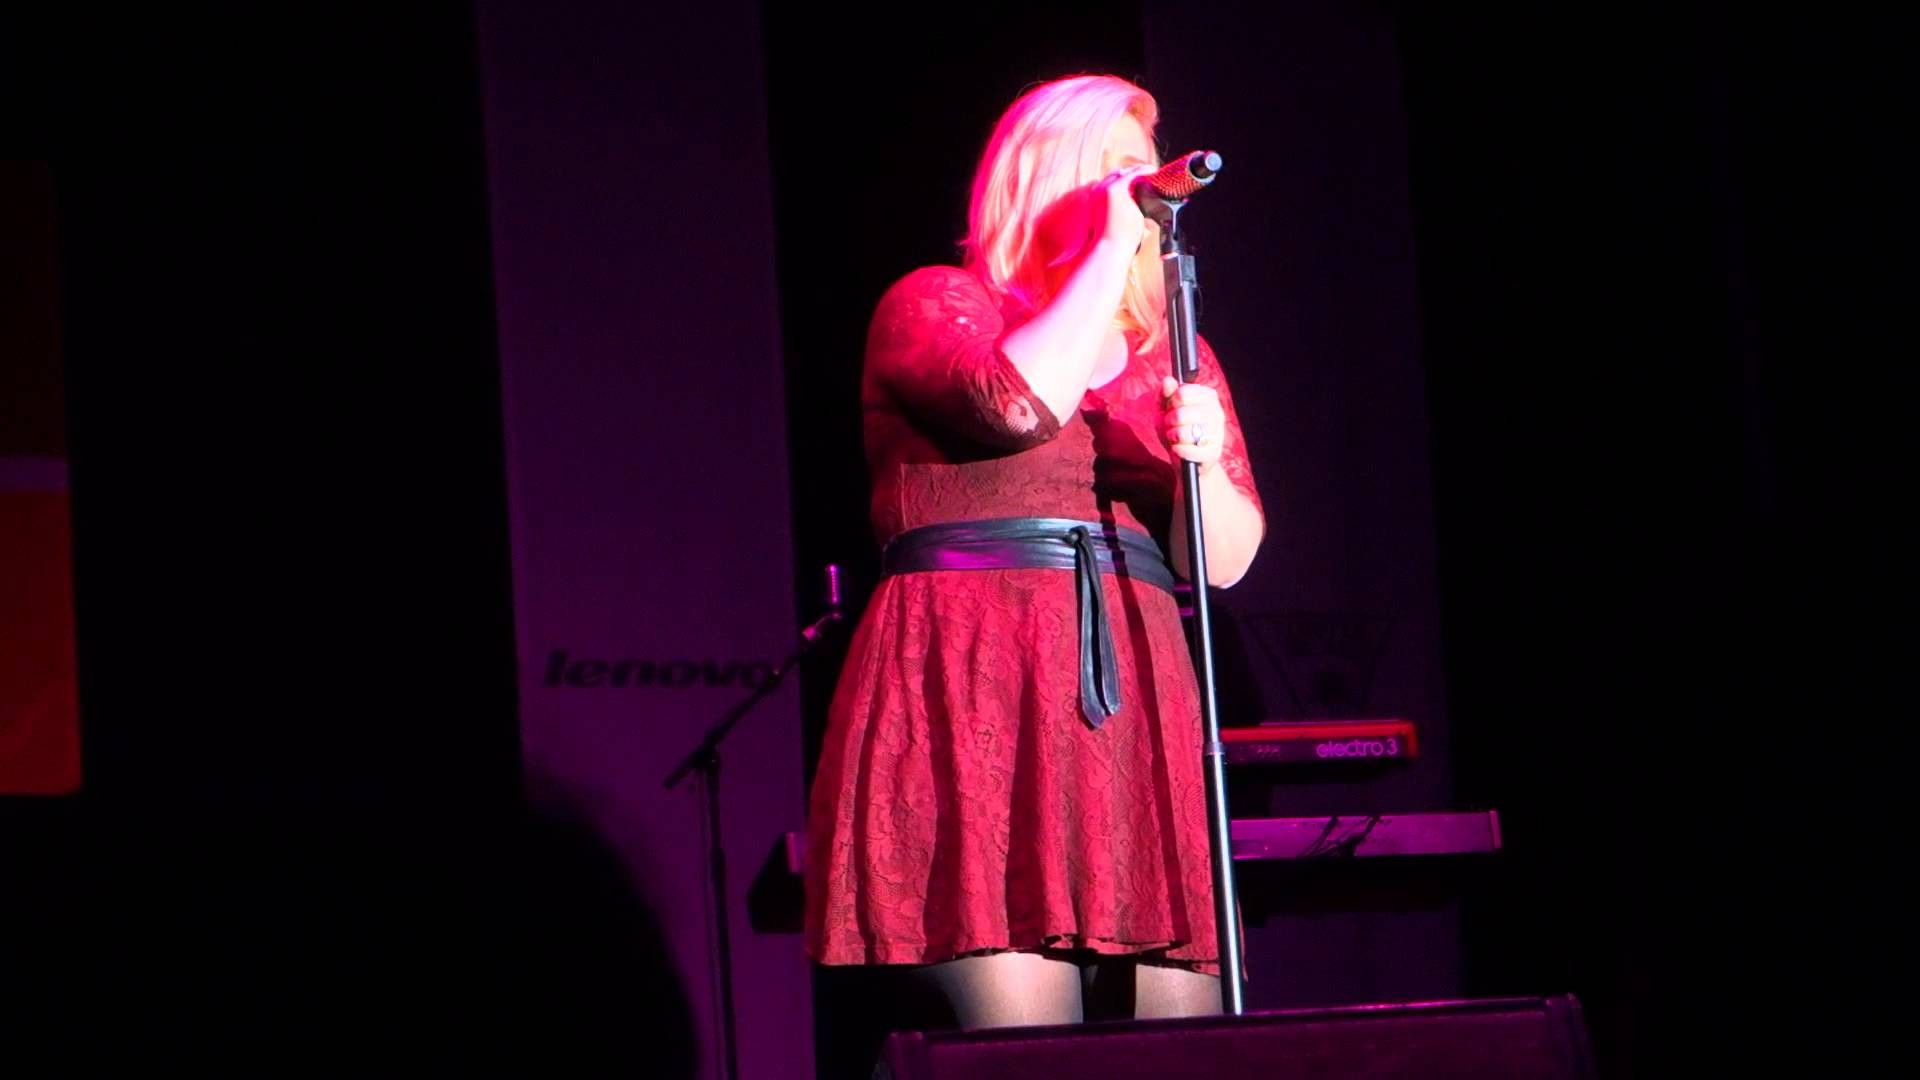 Kelly Clarkson offers smooth cover of Little Big Town's 'Girl Crush': Watch